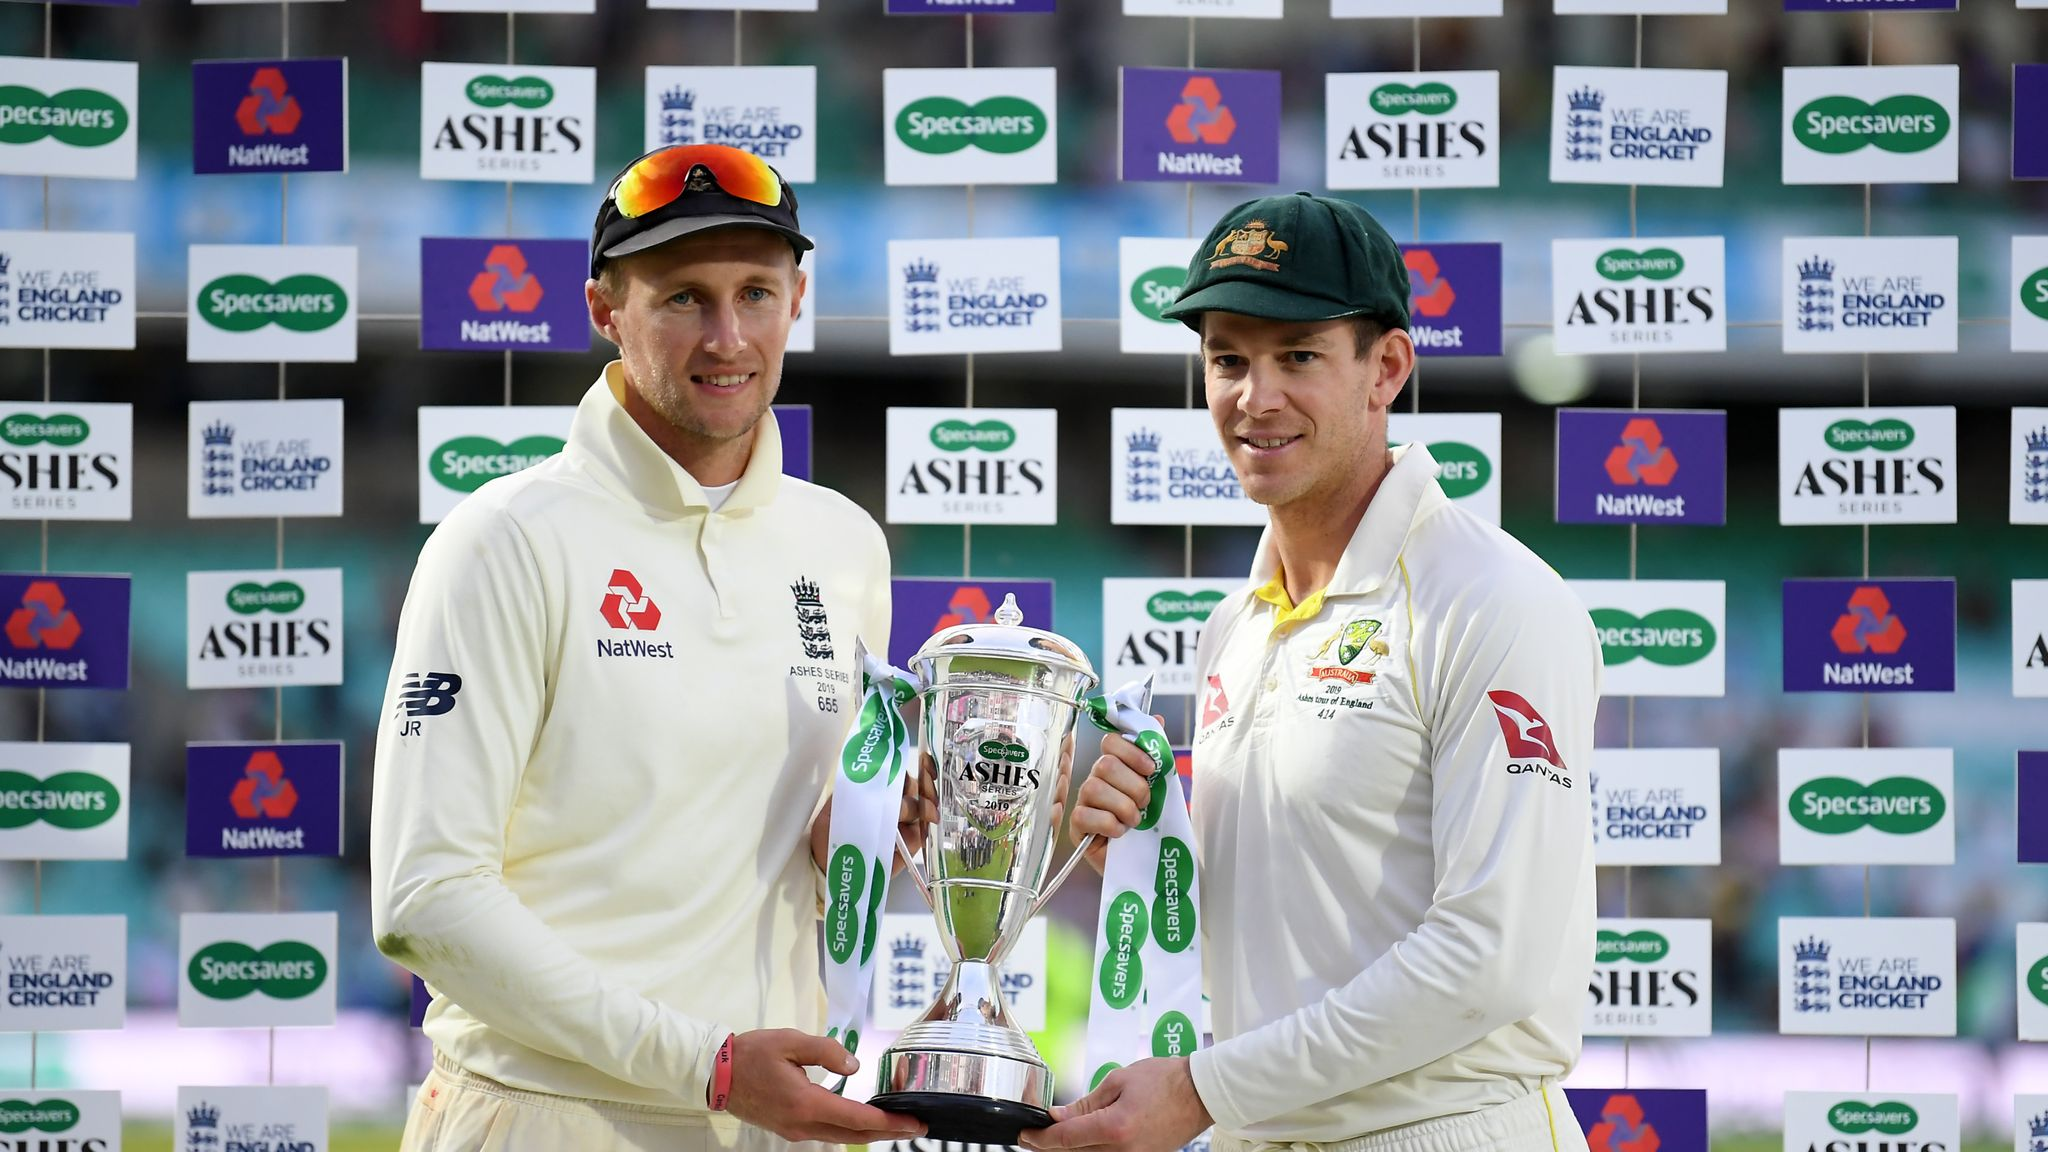 Ashes man of the series betting odds chance sports betting